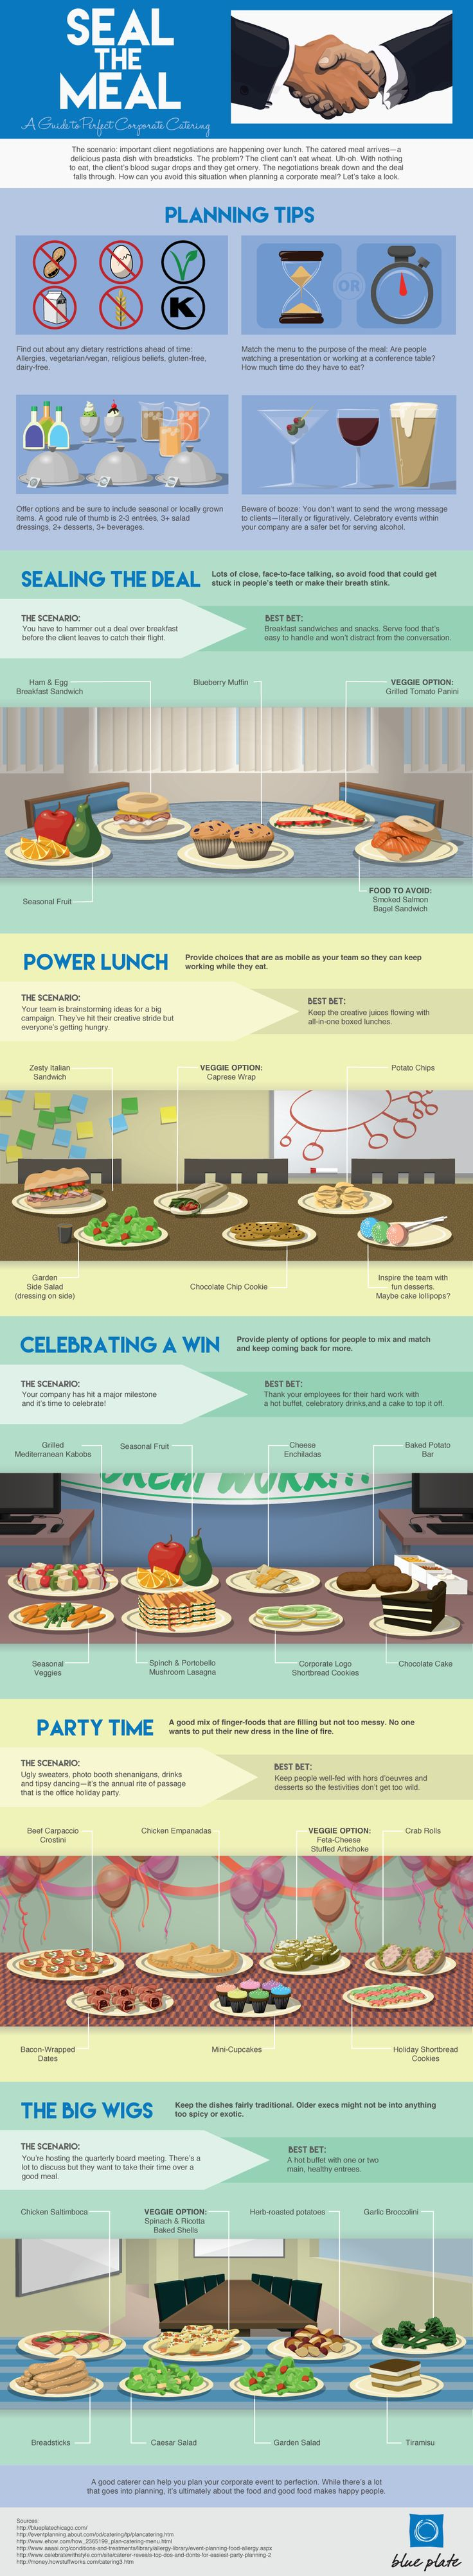 Seal the Meal! Corporate Catering Guide INFOGRAPHIC